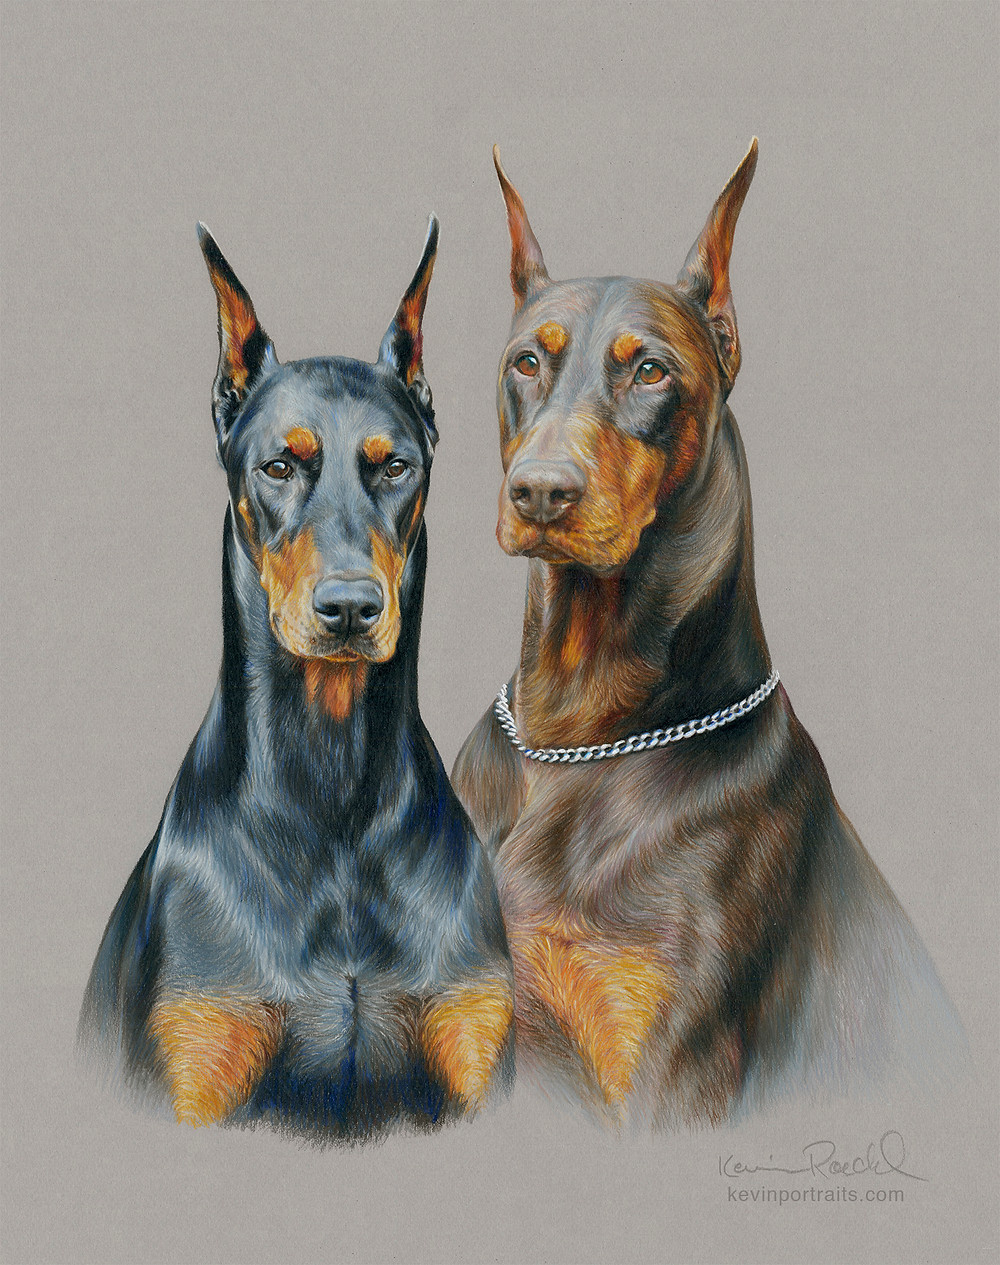 Fine art head-study portrait of a red Doberman and a black Doberman, done with colored pencil on Canson paper by artist Kevin Roeckl